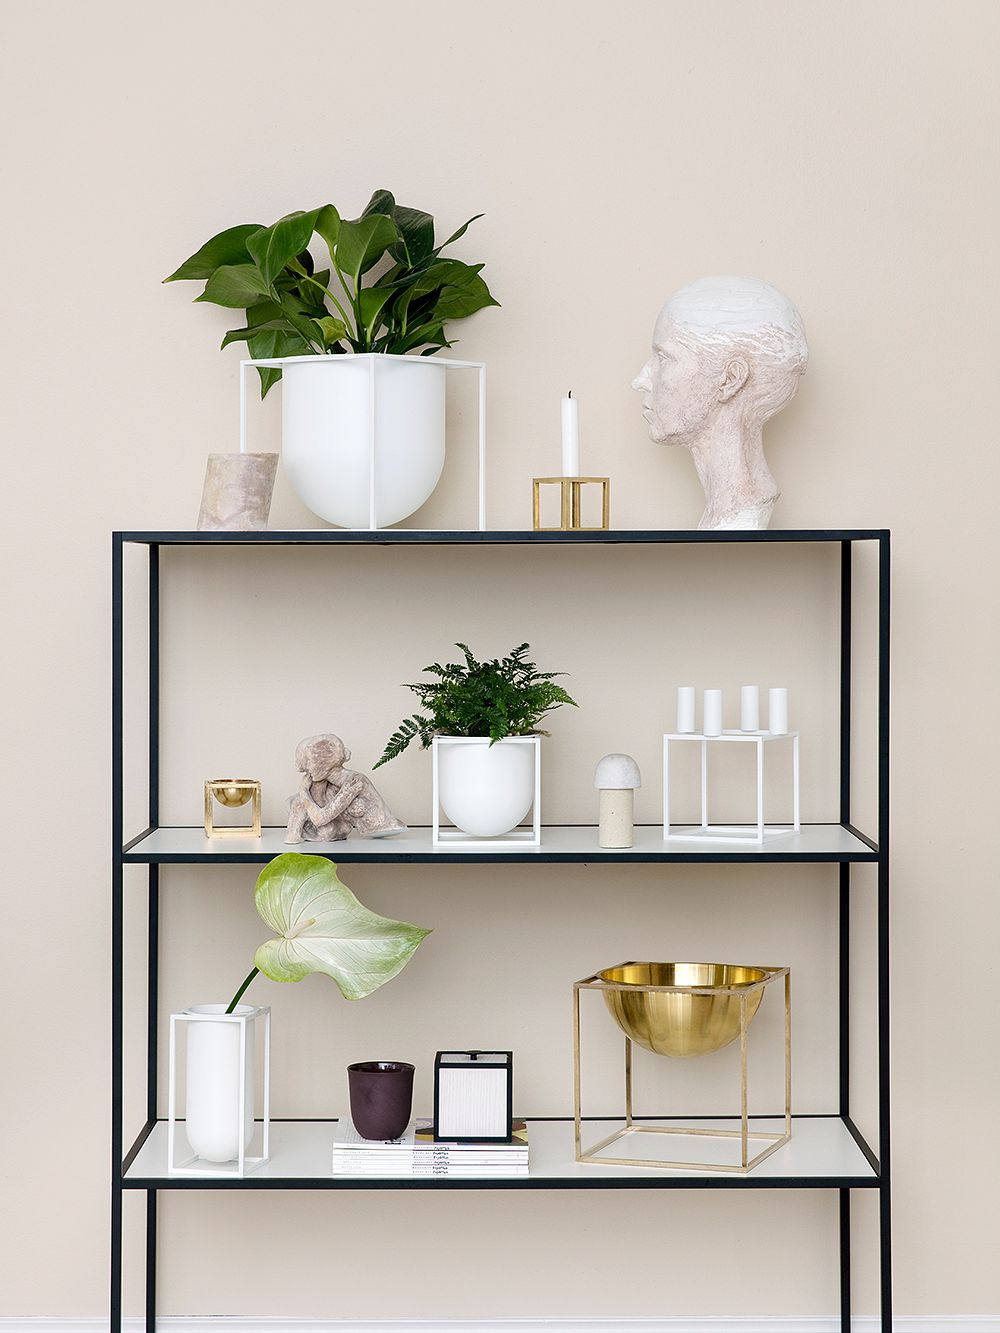 Pieces from By Lassen's Kubus collection displayed on a shelf.